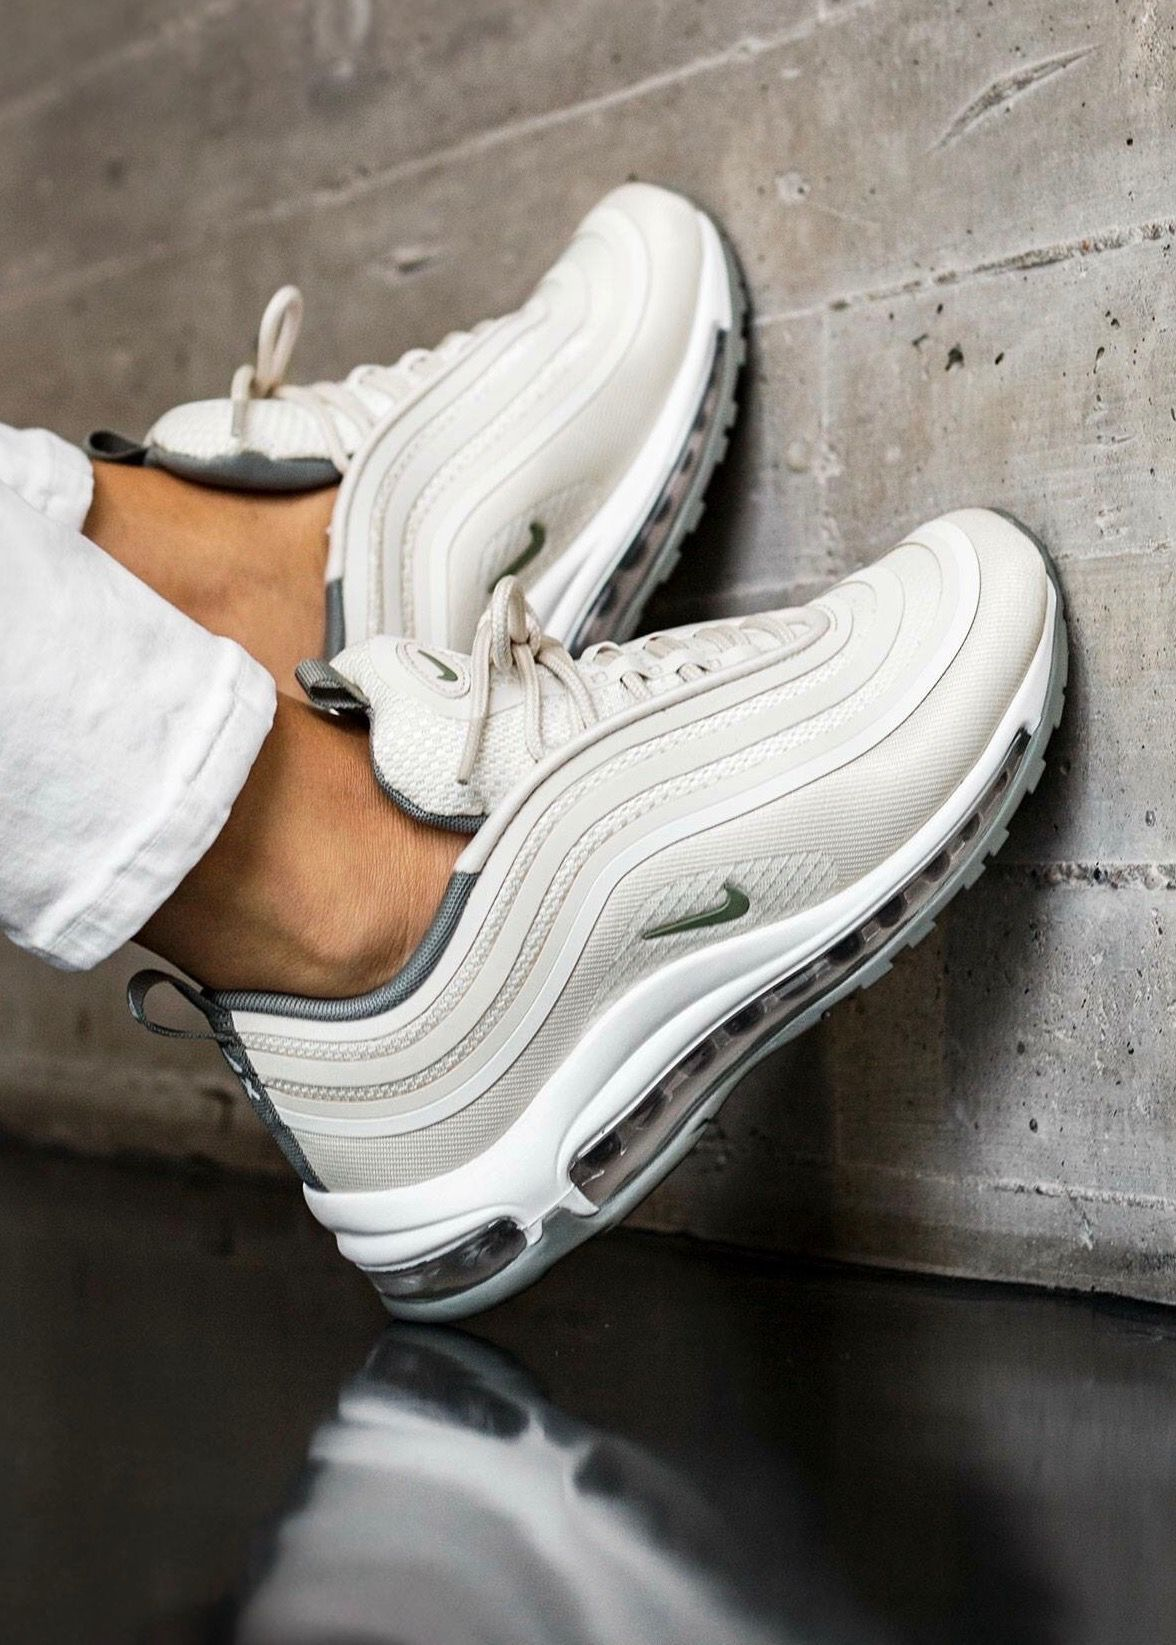 premium selection 27b18 37c89 Nike Air Max 97 Ultra https   twitter.com gmsingin1 status